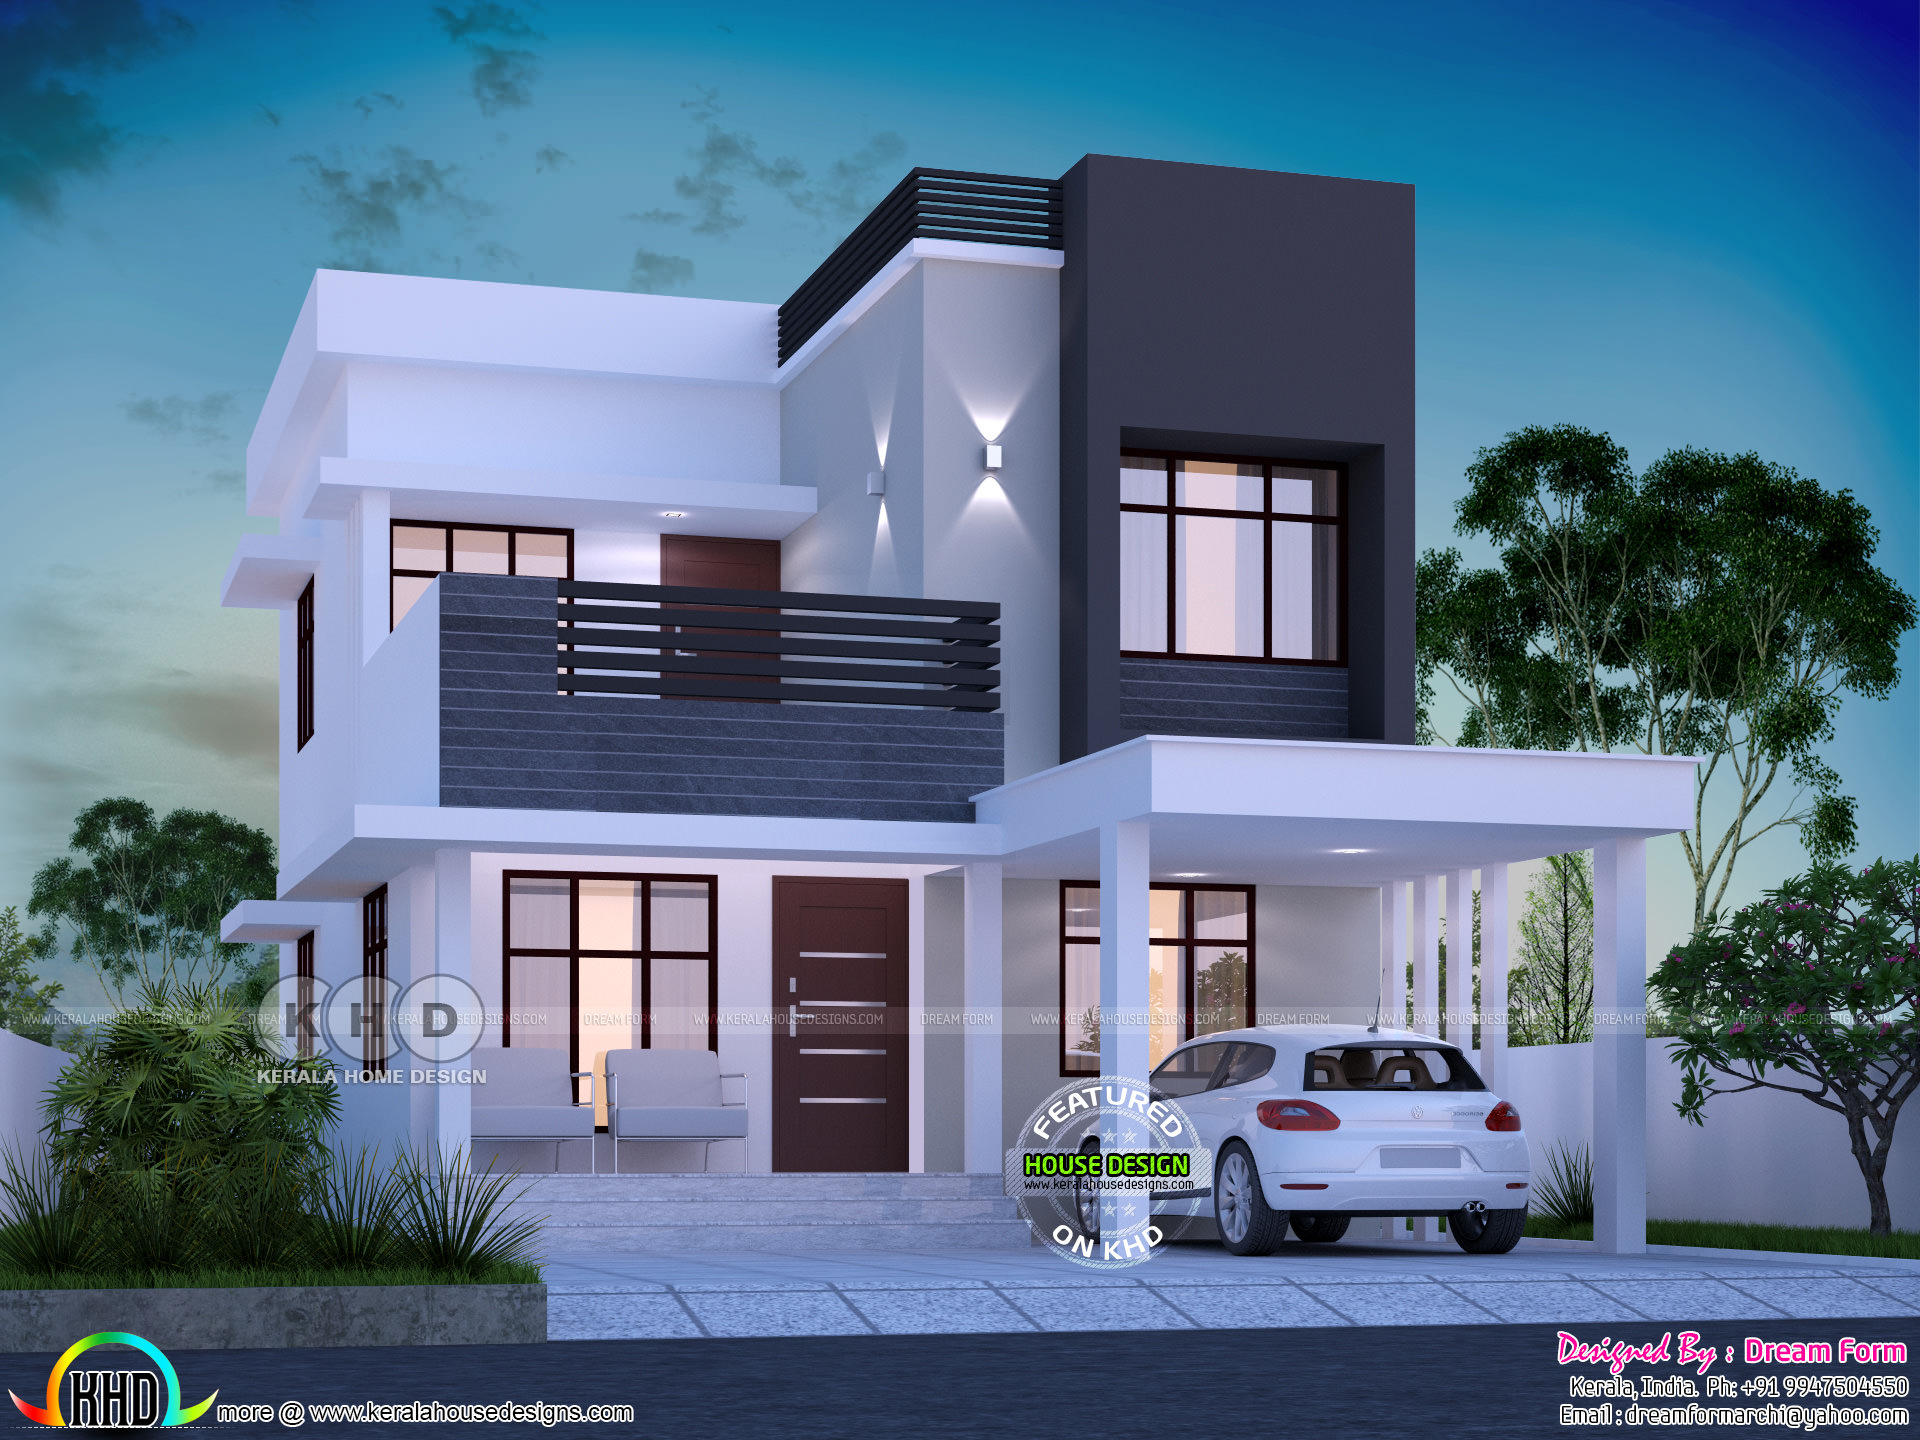 1645 square feet 3 bedroom modern house plan | Kerala home ...